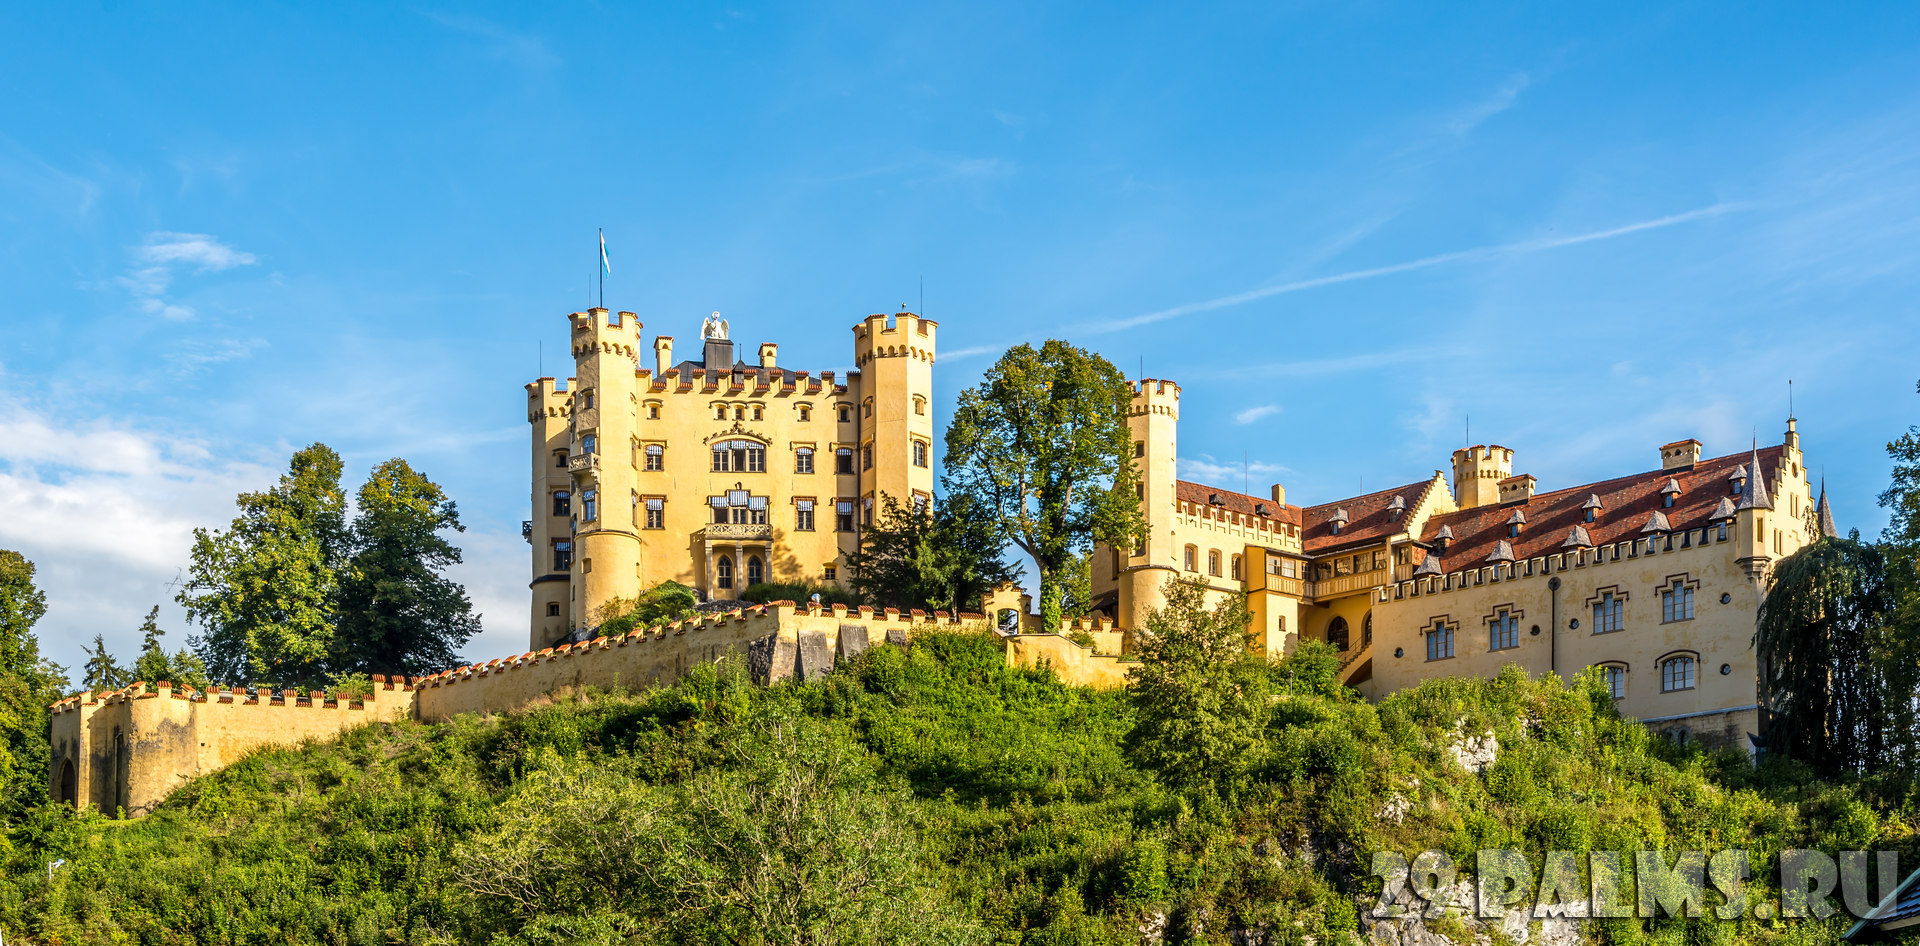 Клуб Павла Аксенова. Германия. Бавария. Замок Хоэншвангау. Hohenschwangau childhood residence of King Ludwig II of Bavaria. Фото milosk50 - Depositphotos